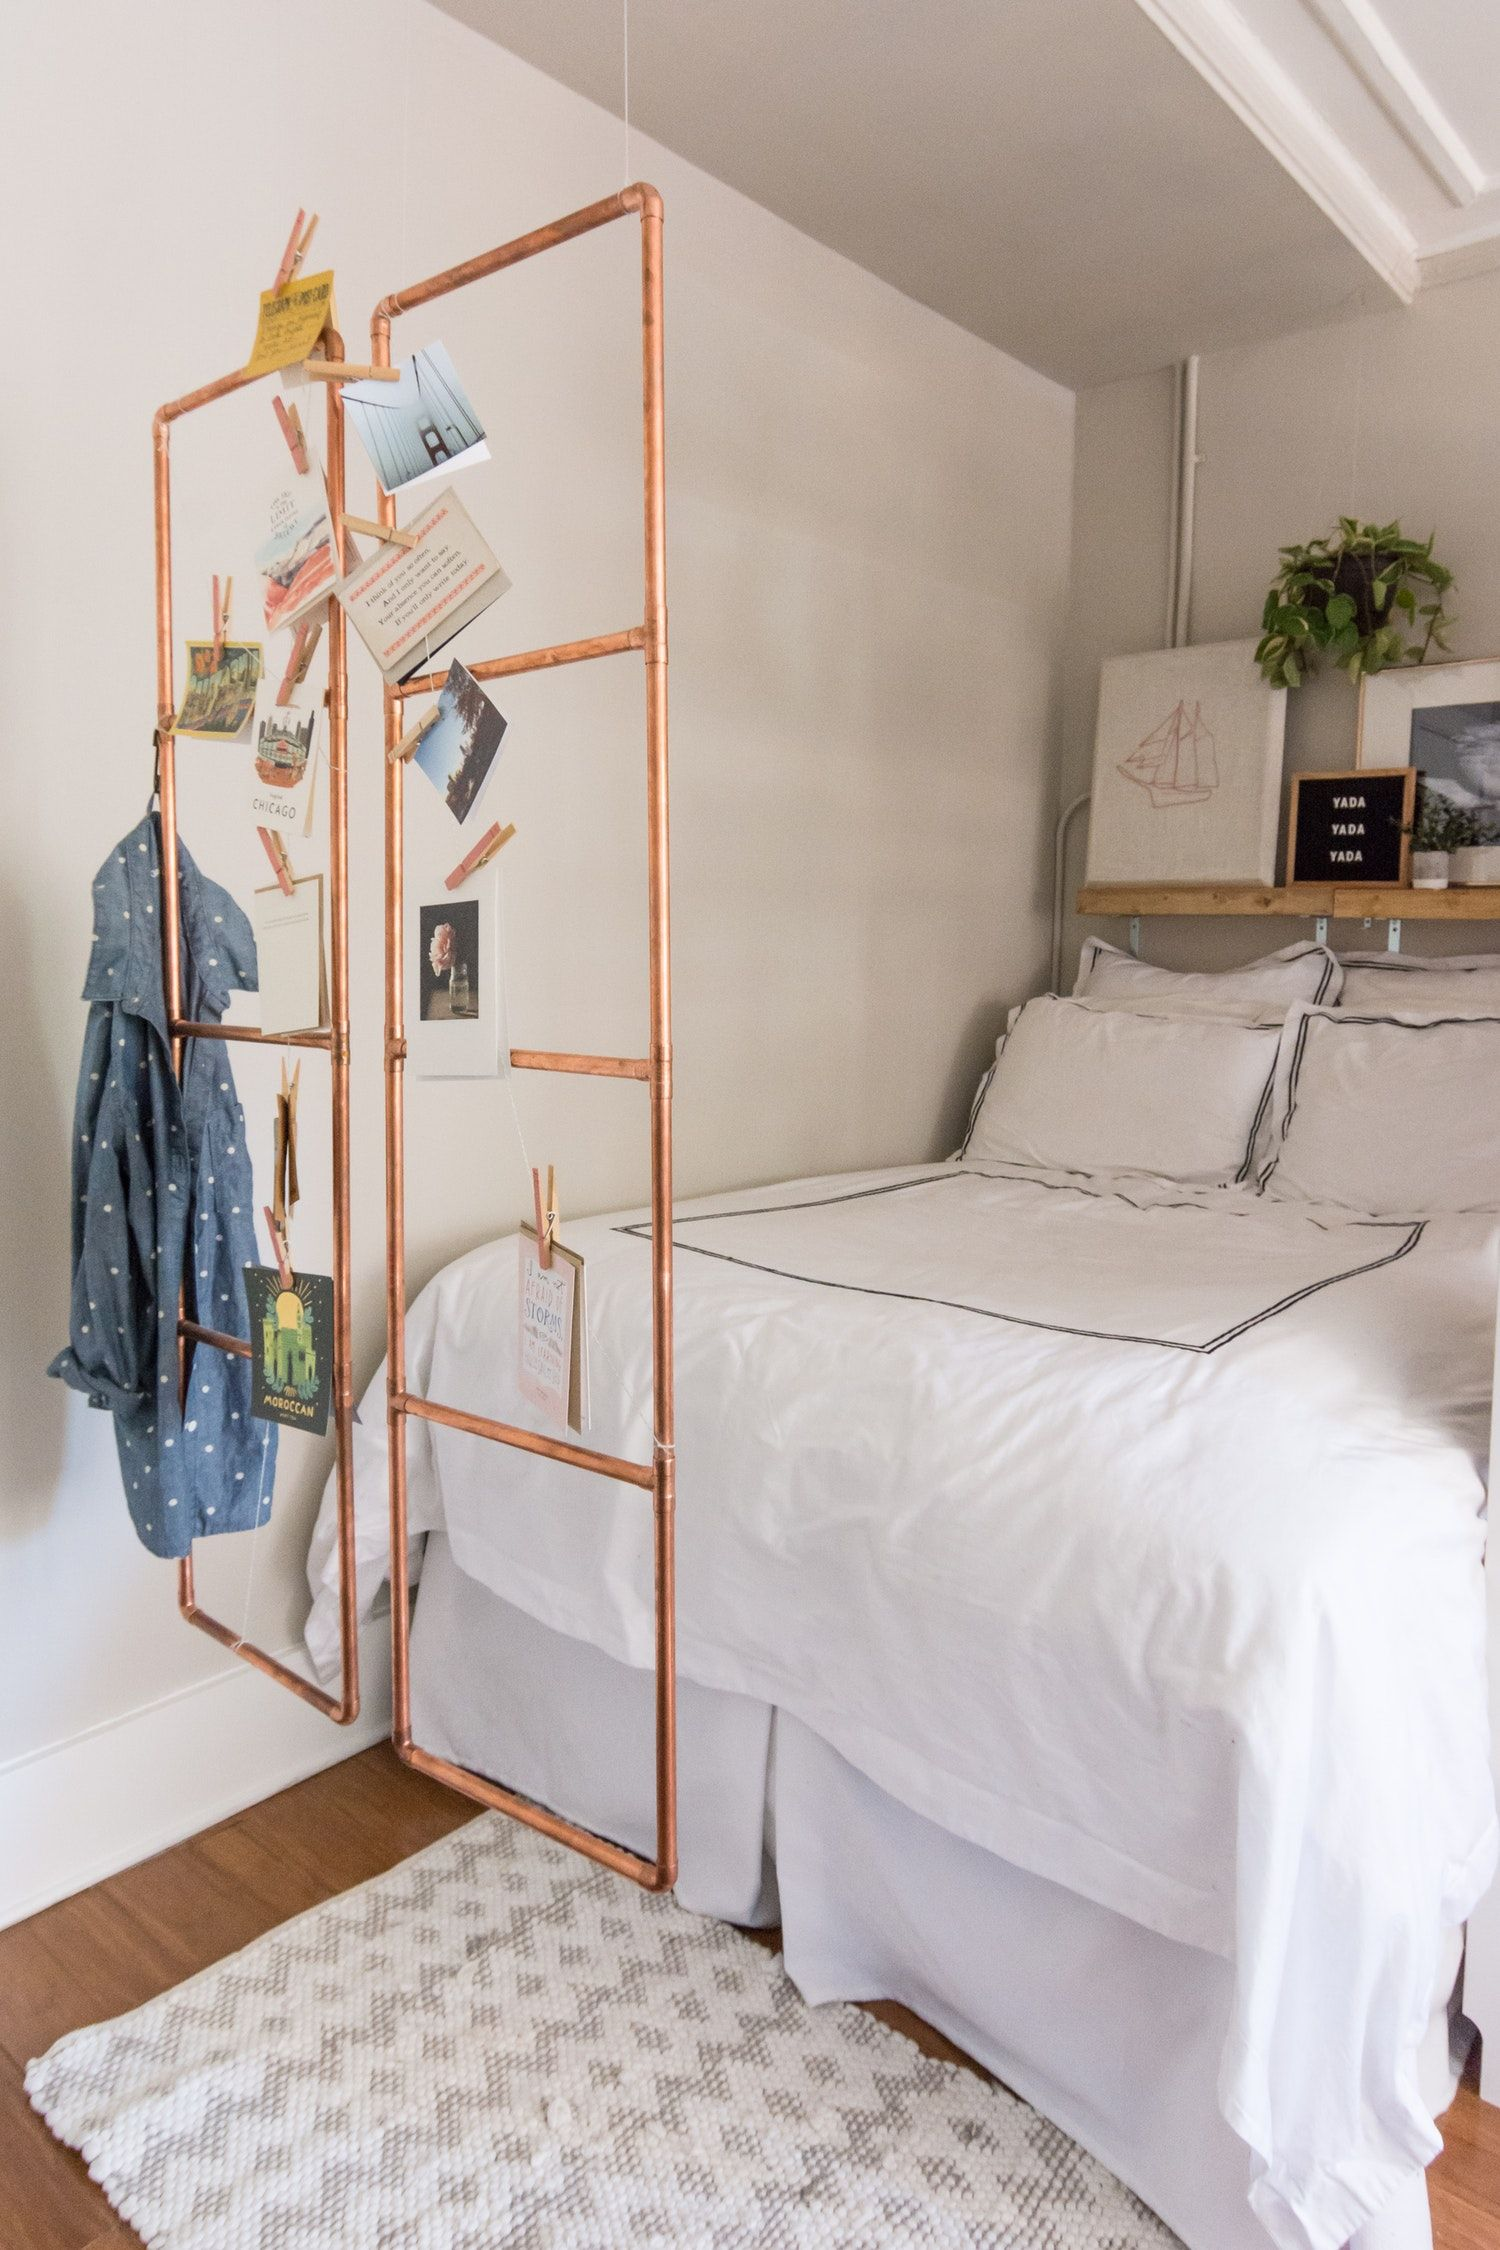 How To Make a Clever Easy DIY Copper Room Divider Pinterest